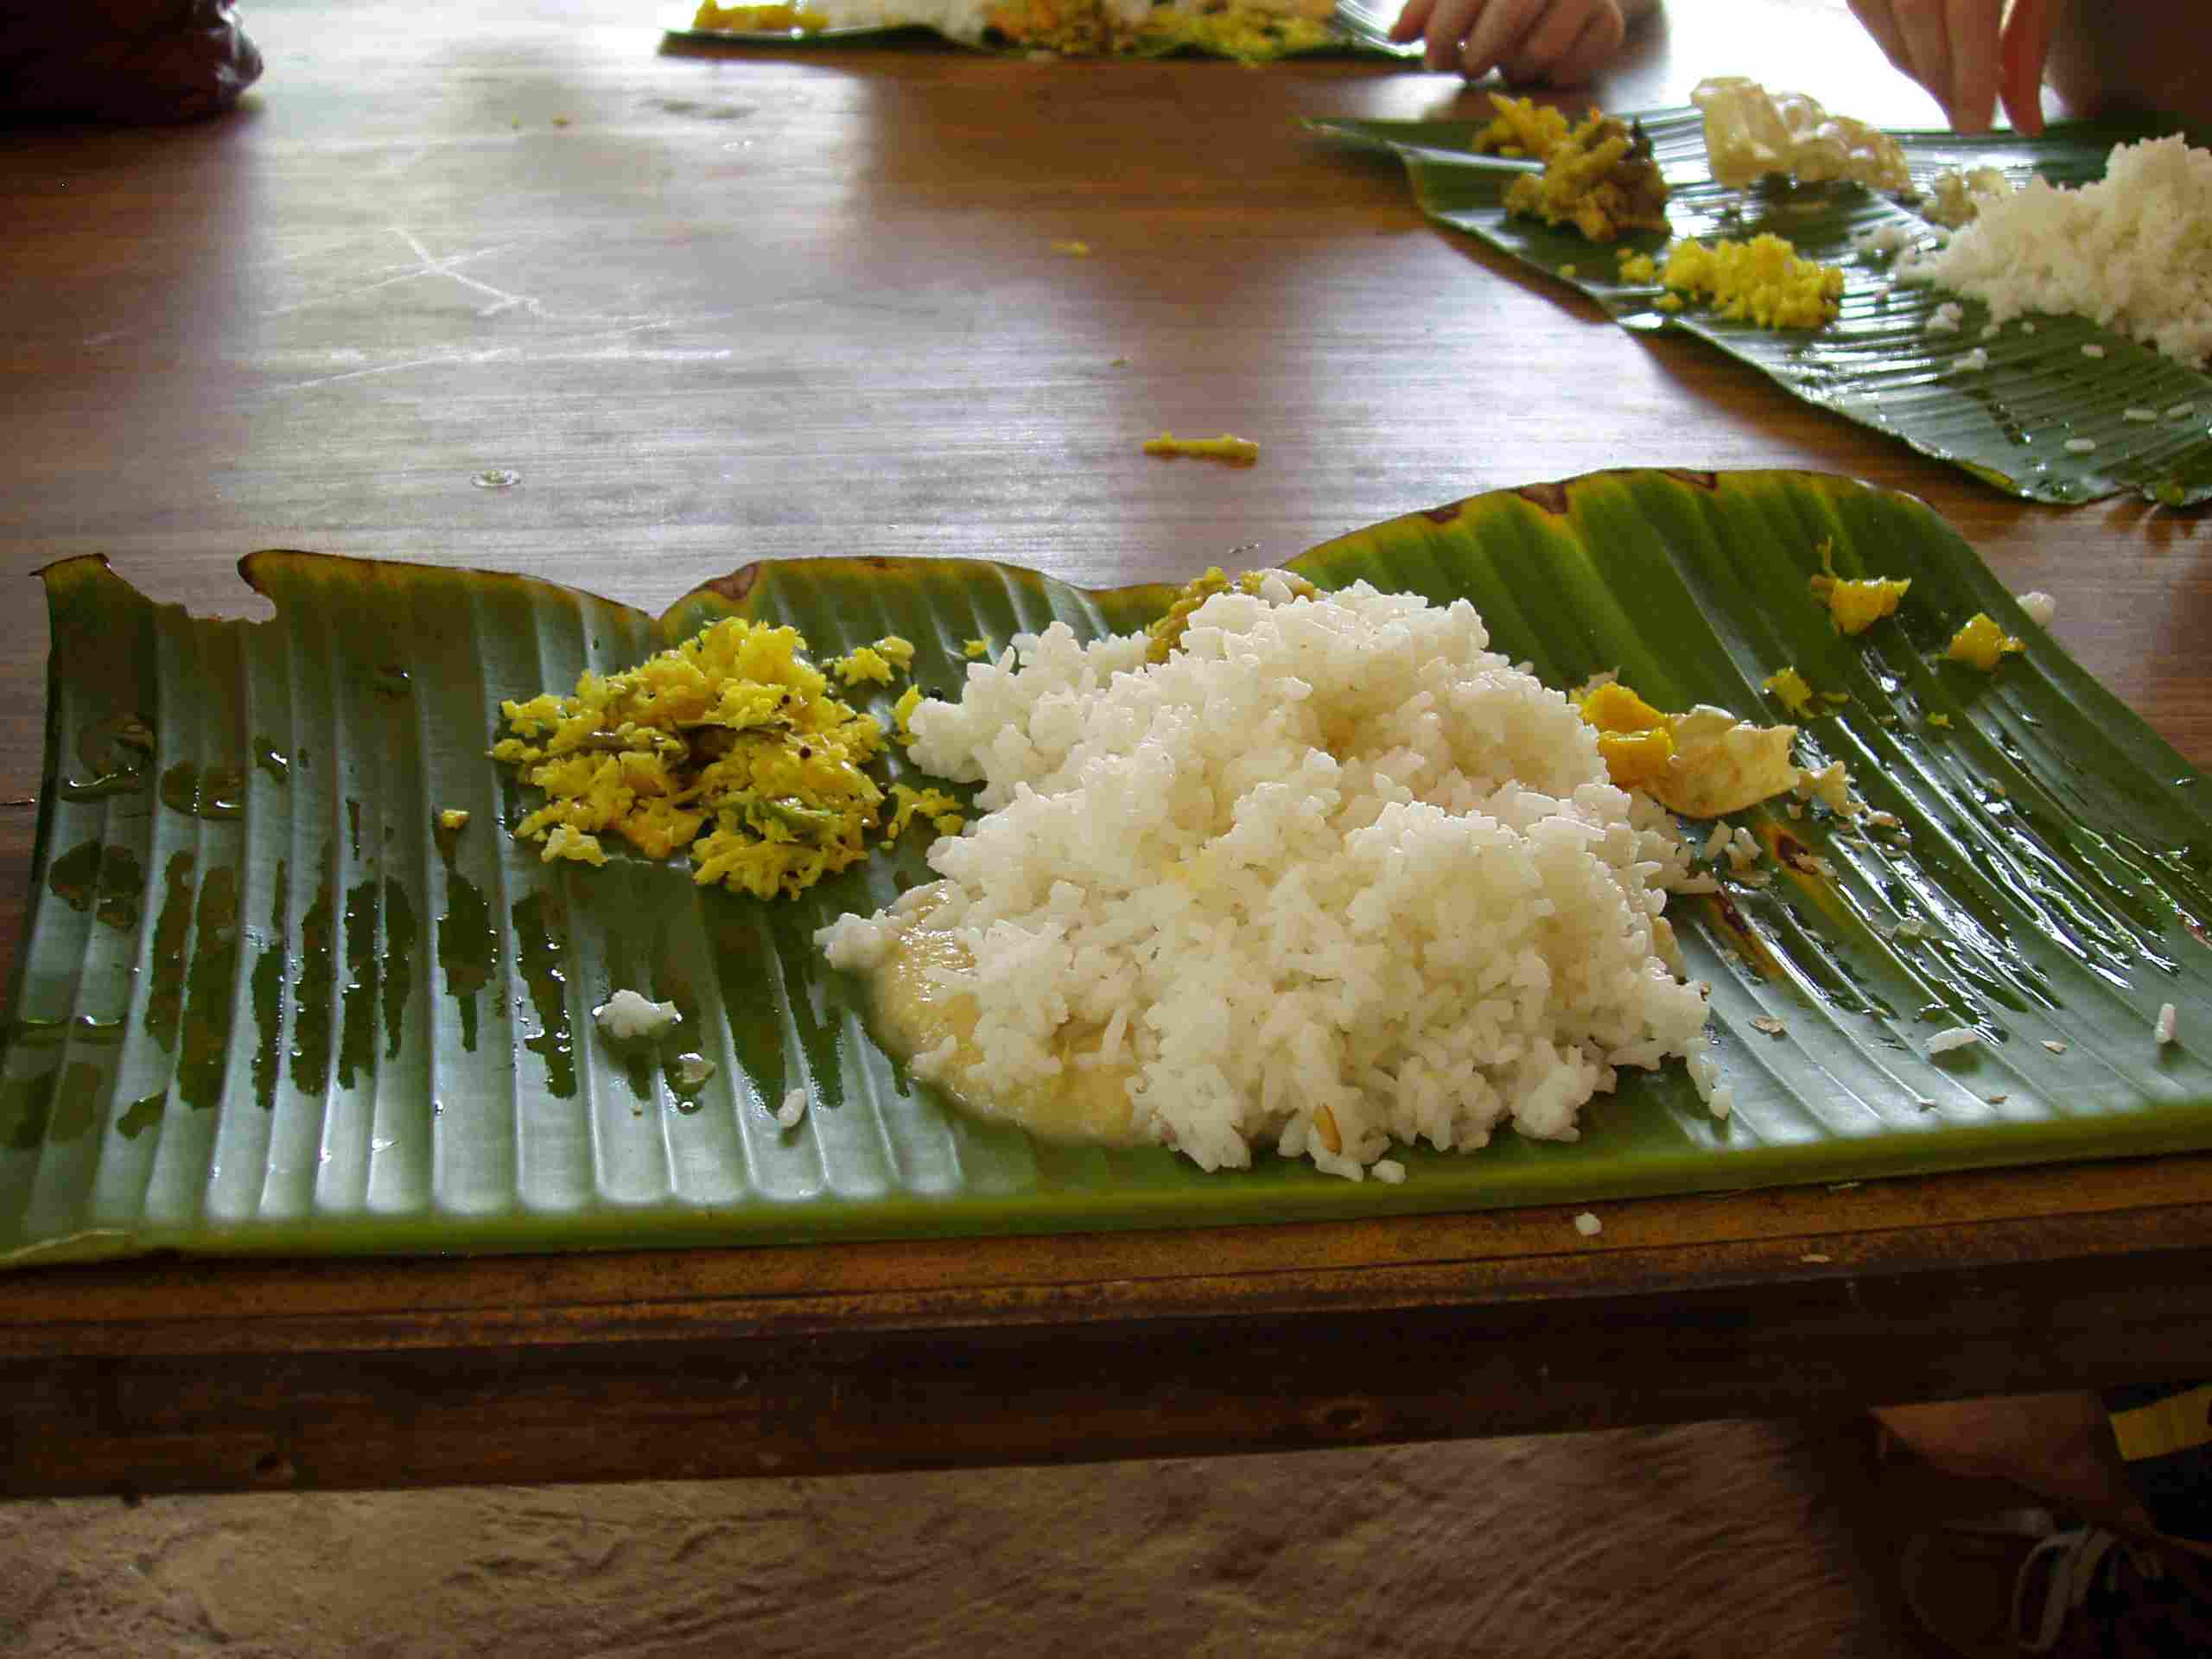 Lunch in the backwaters